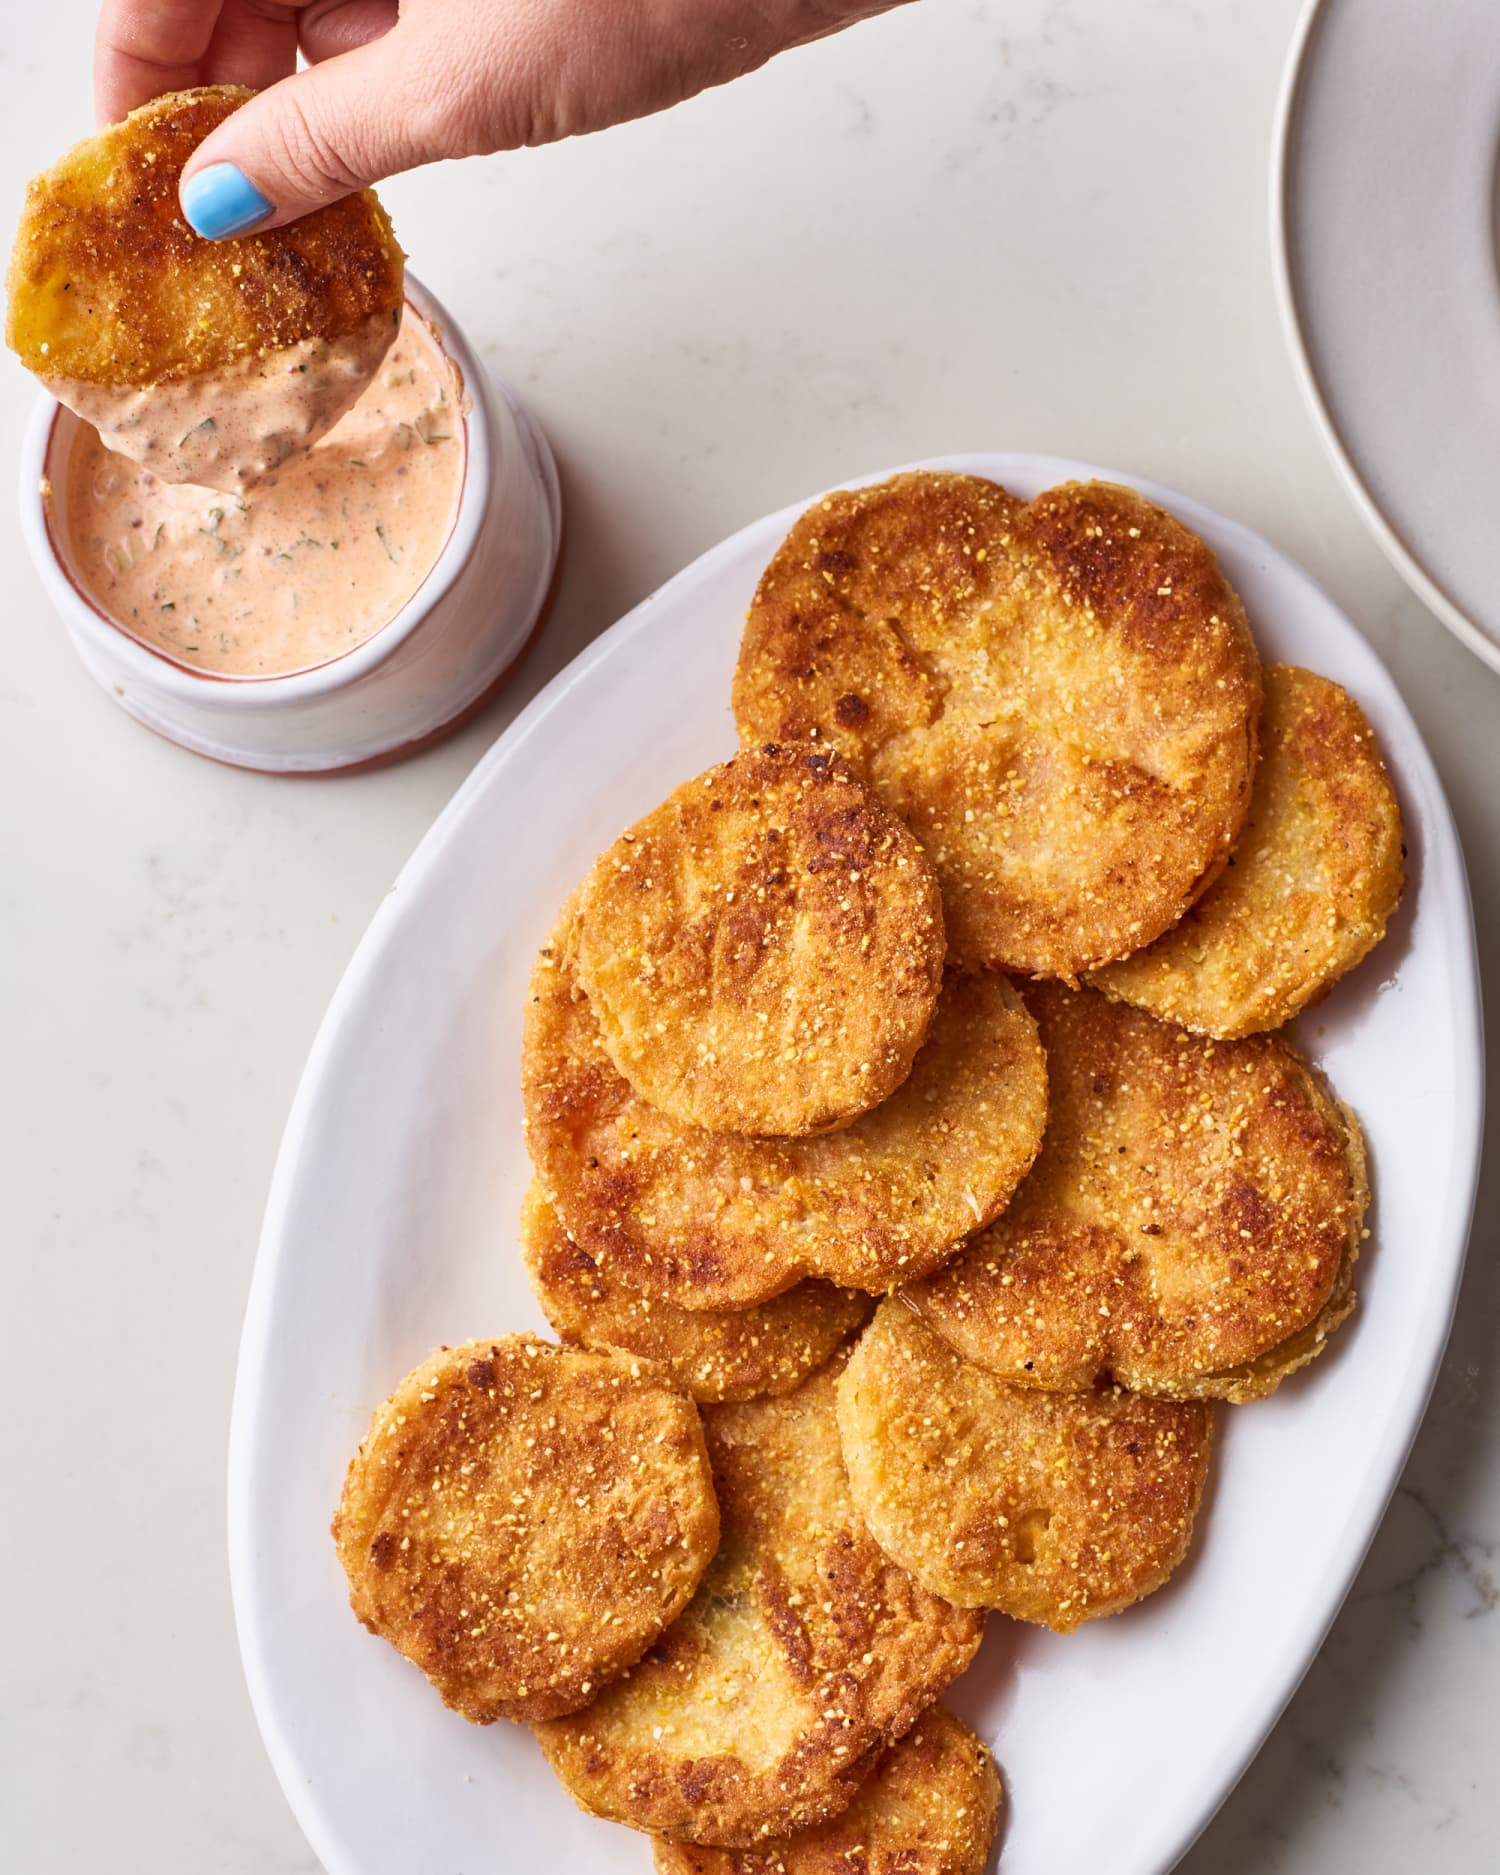 How To Make the Best Southern Fried Green Tomatoes